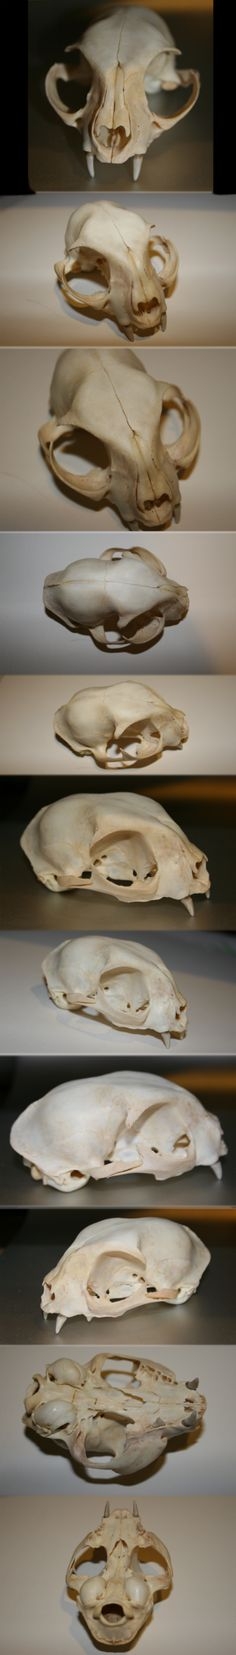 Domestic Cat Skull by Earldense                                                                                                                                                                                 More